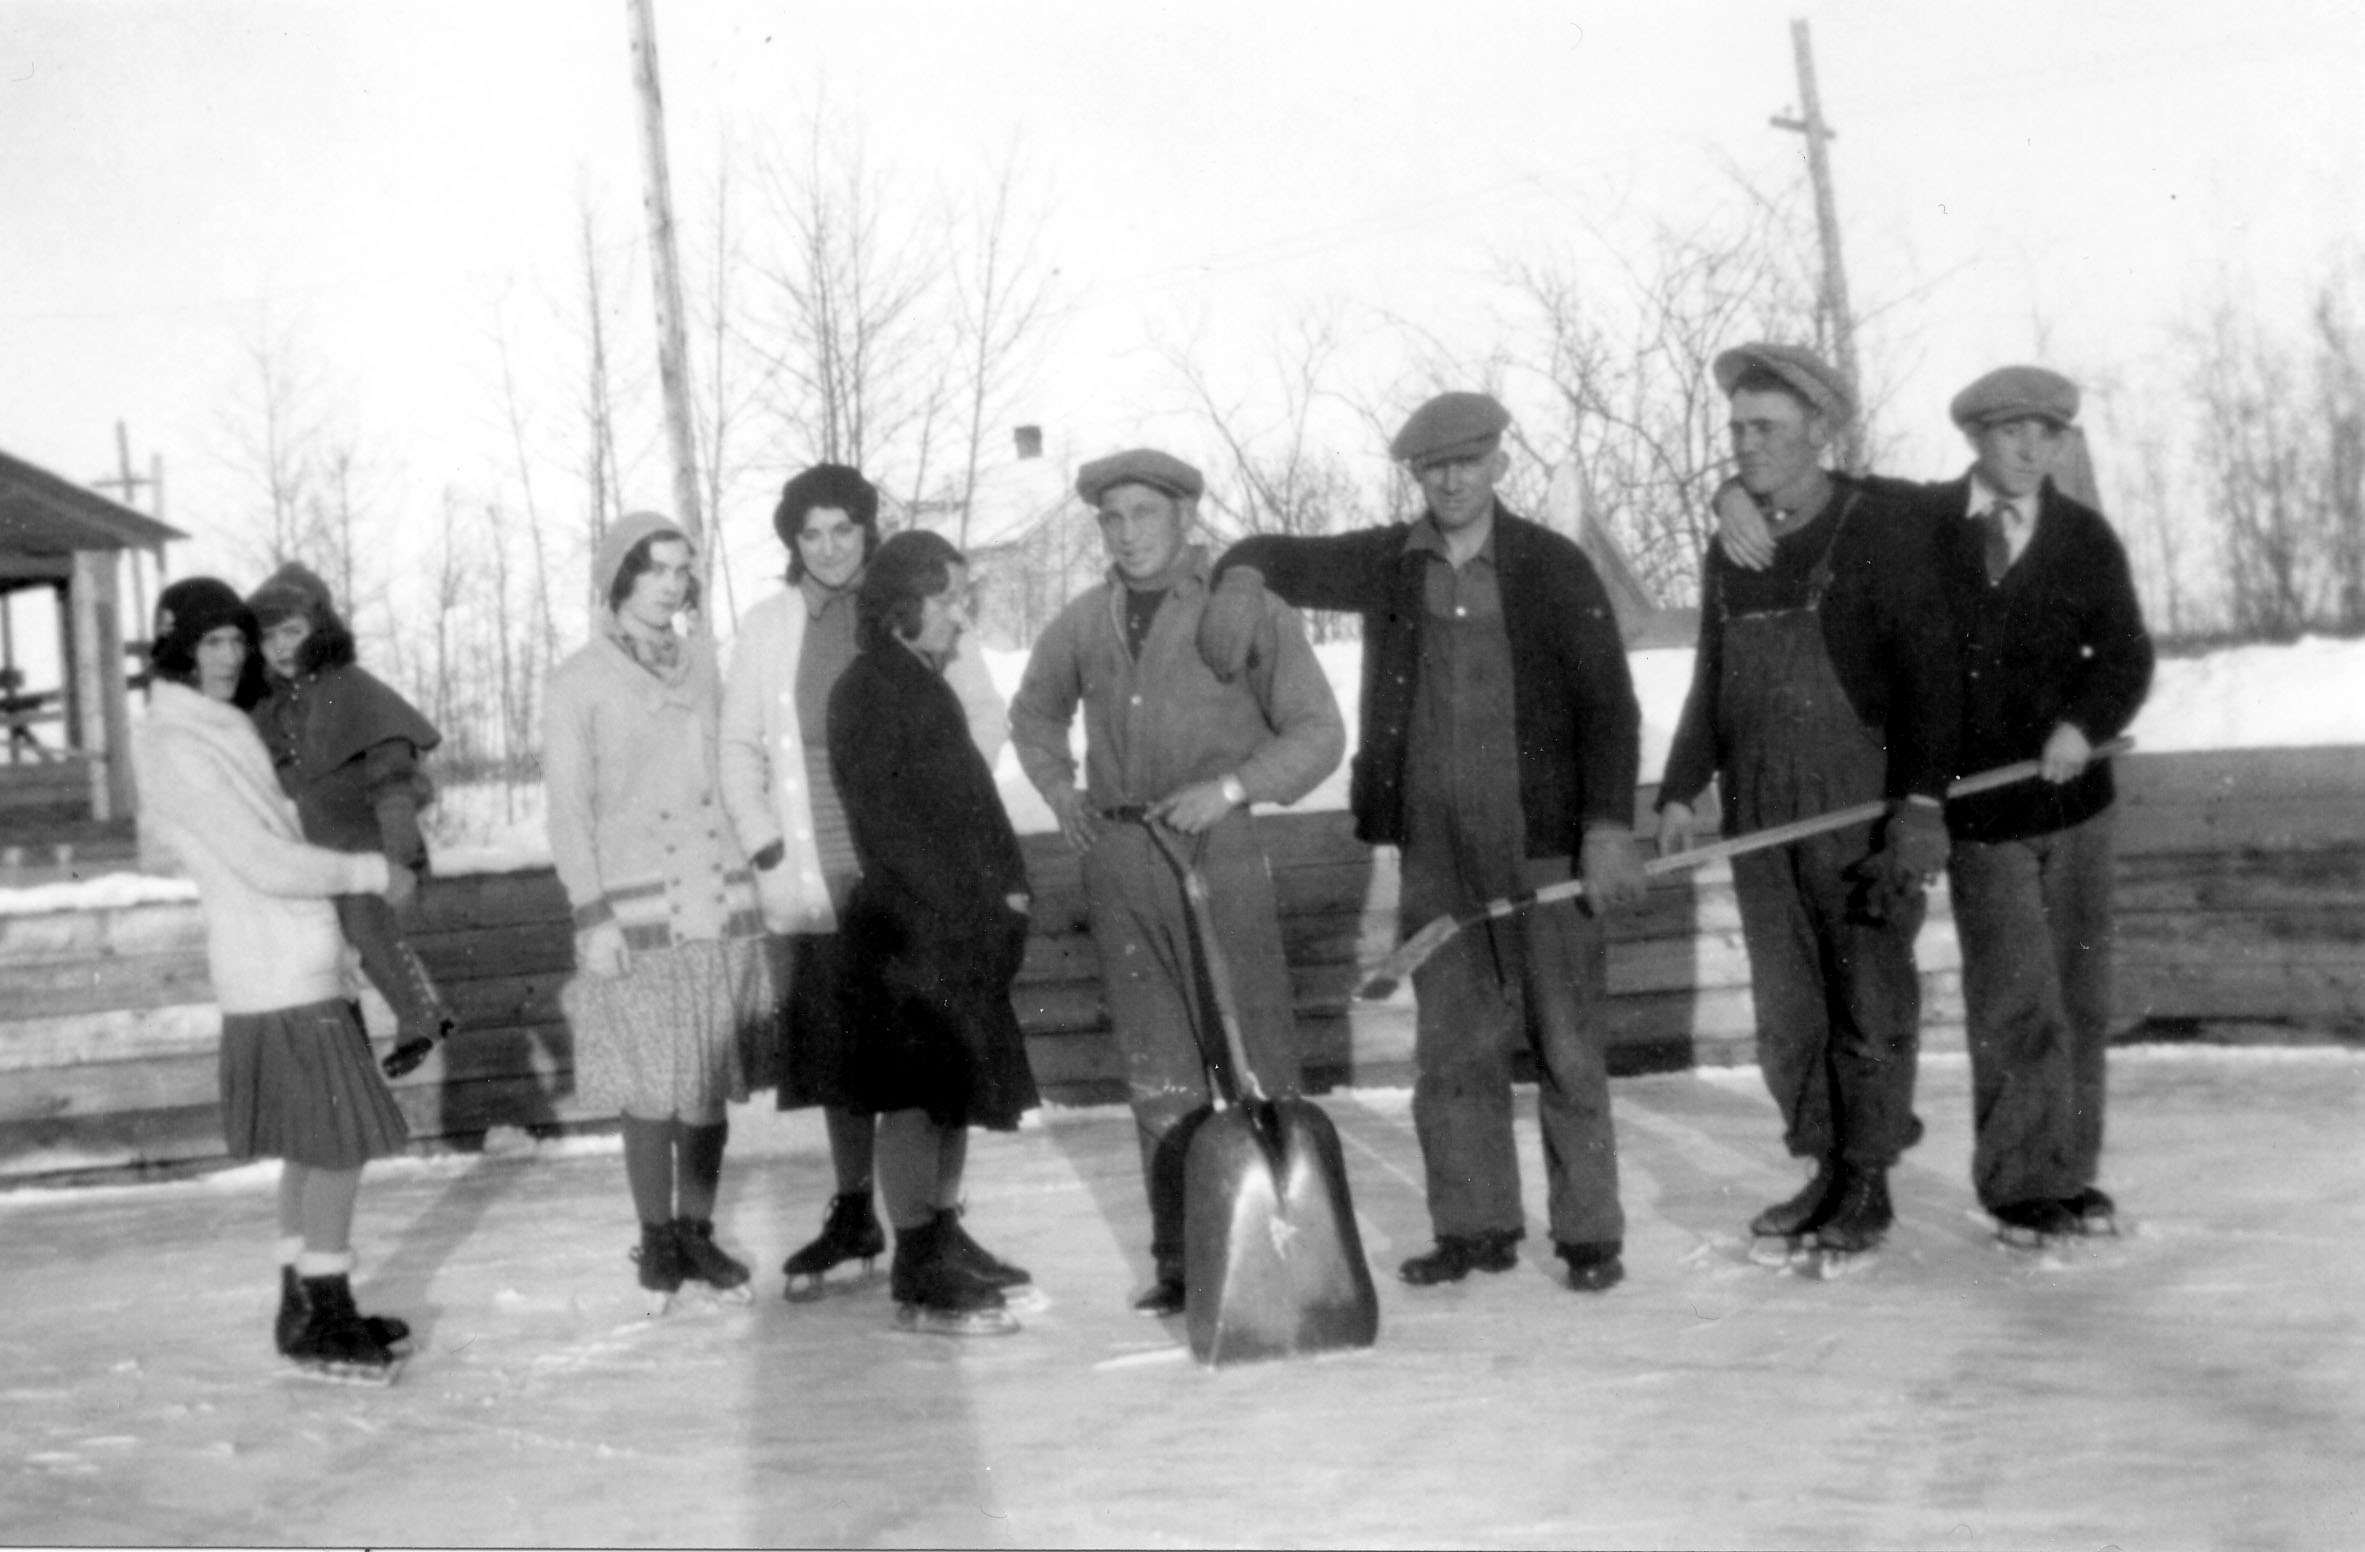 Clearing the ice for skating